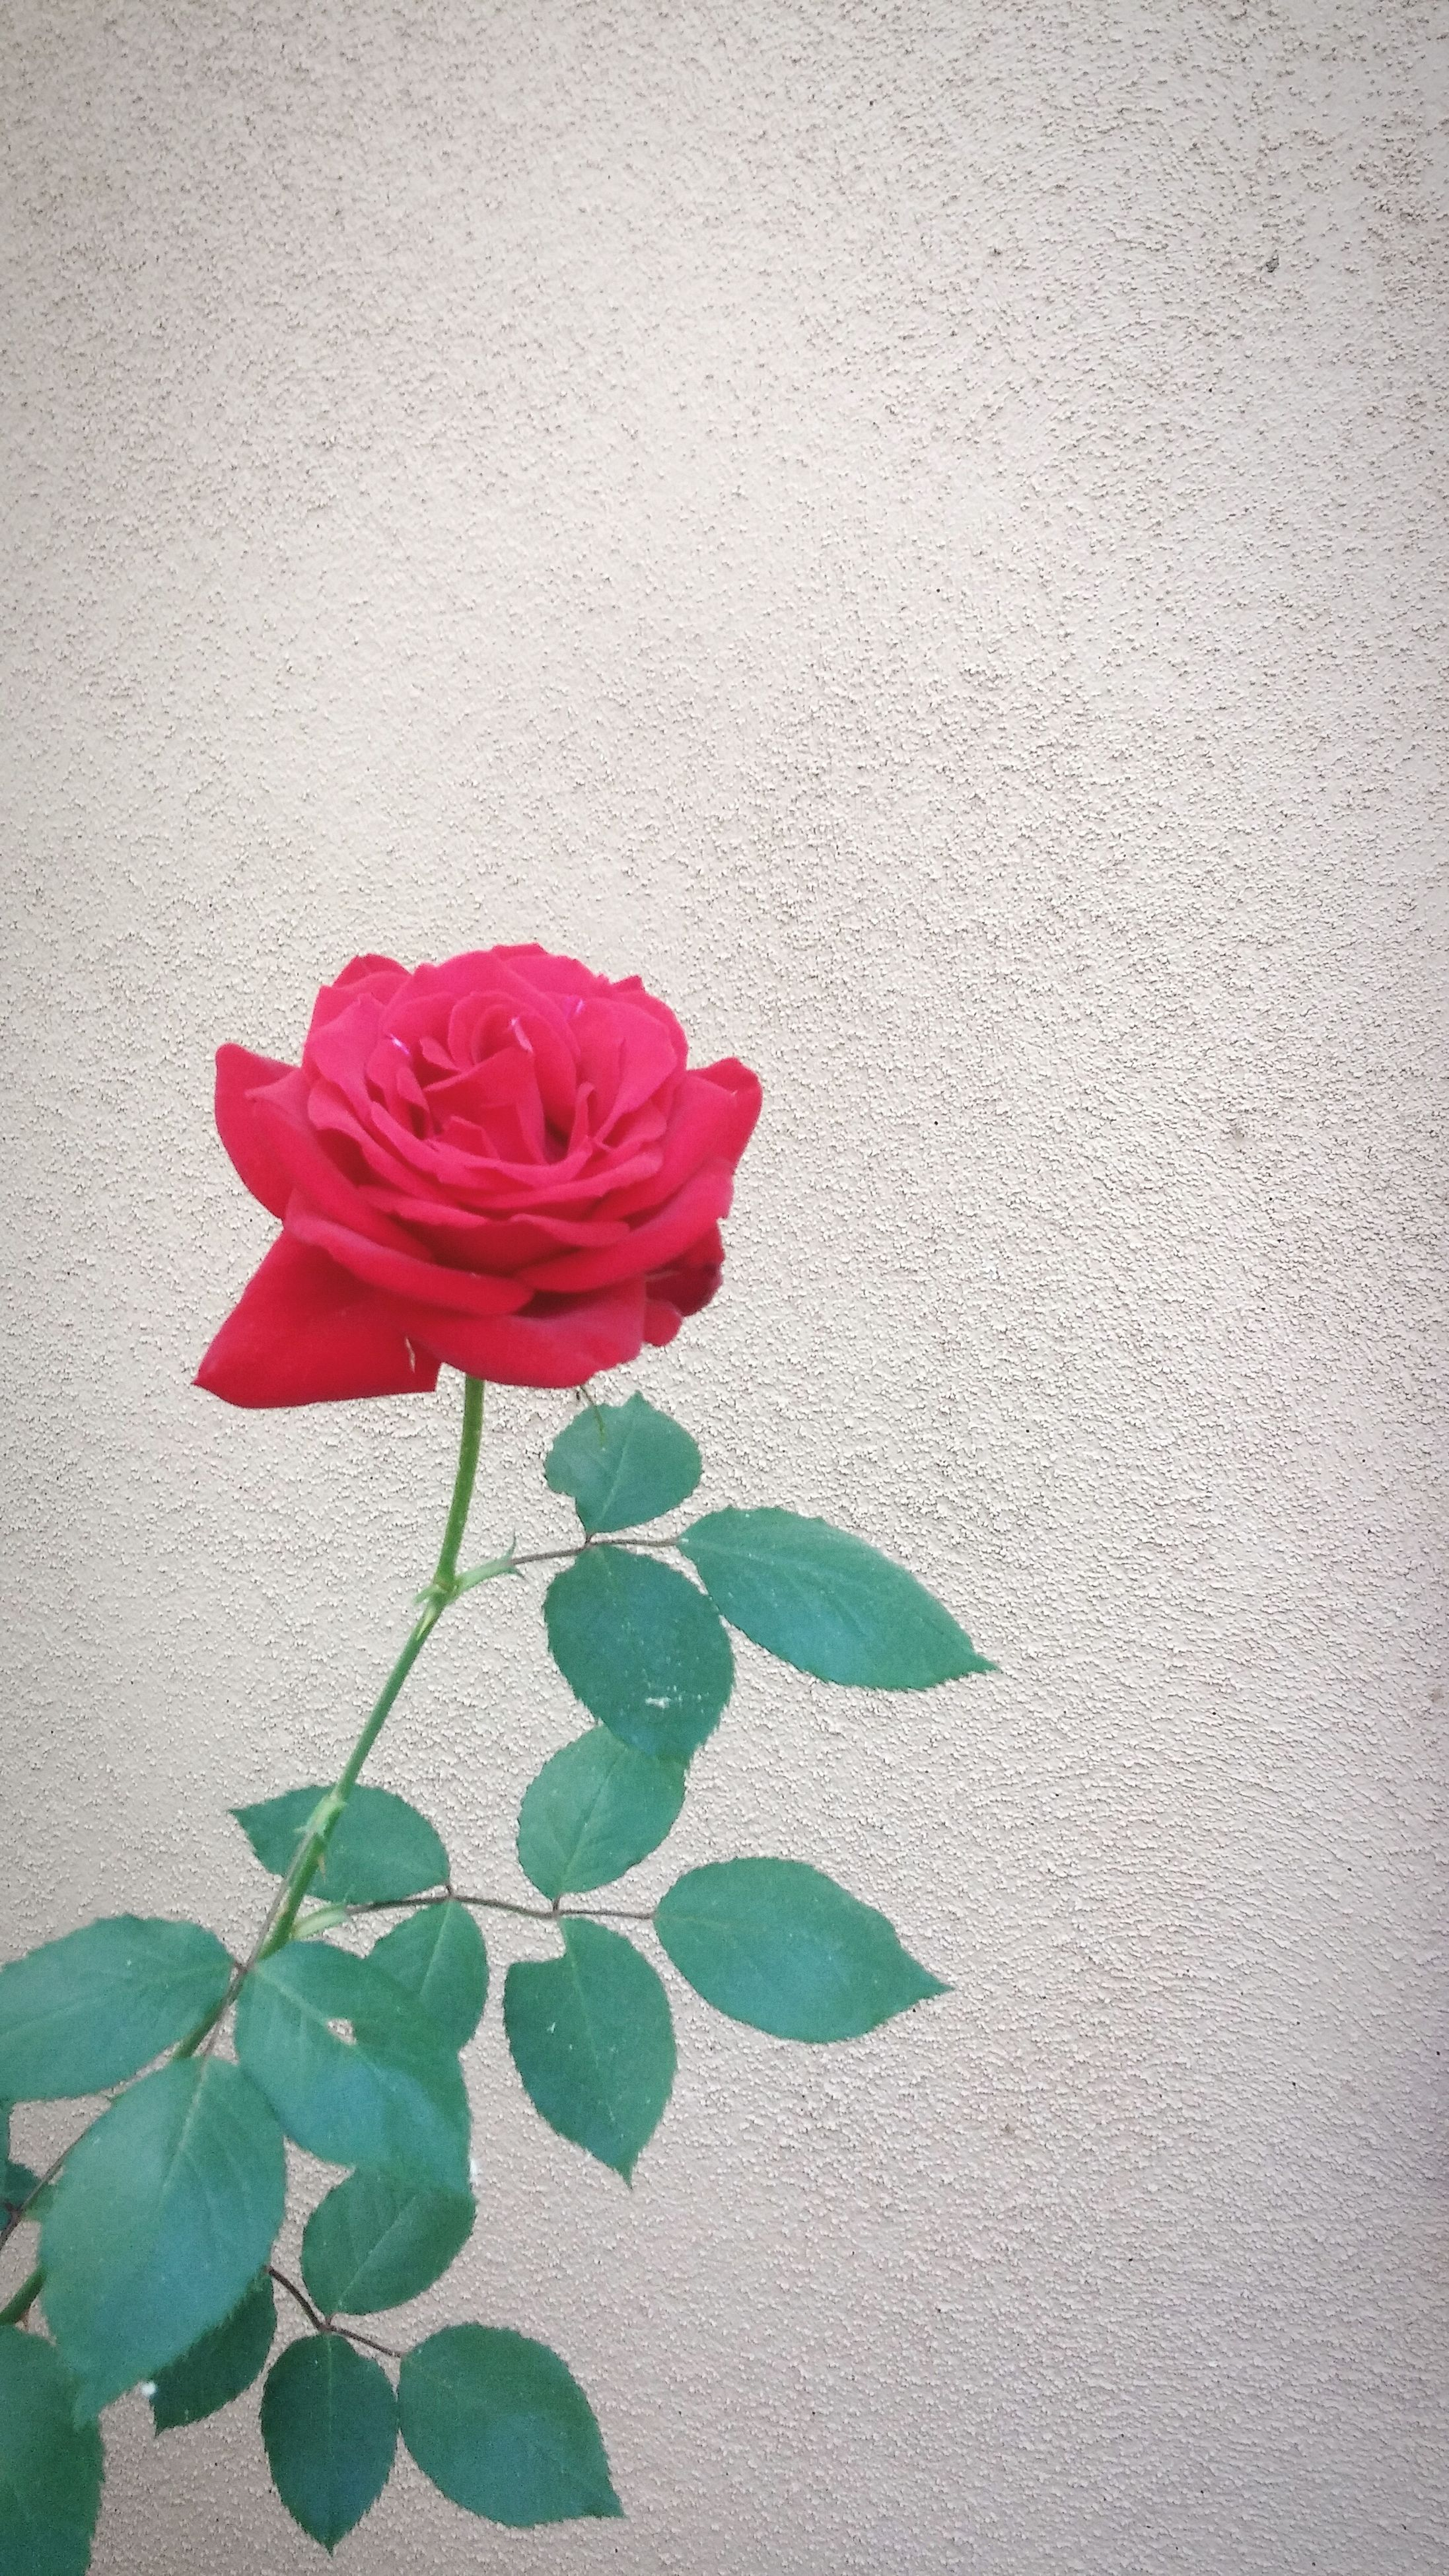 flower, petal, freshness, fragility, leaf, flower head, growth, red, plant, rose - flower, beauty in nature, wall - building feature, nature, close-up, blooming, stem, single flower, no people, rose, in bloom